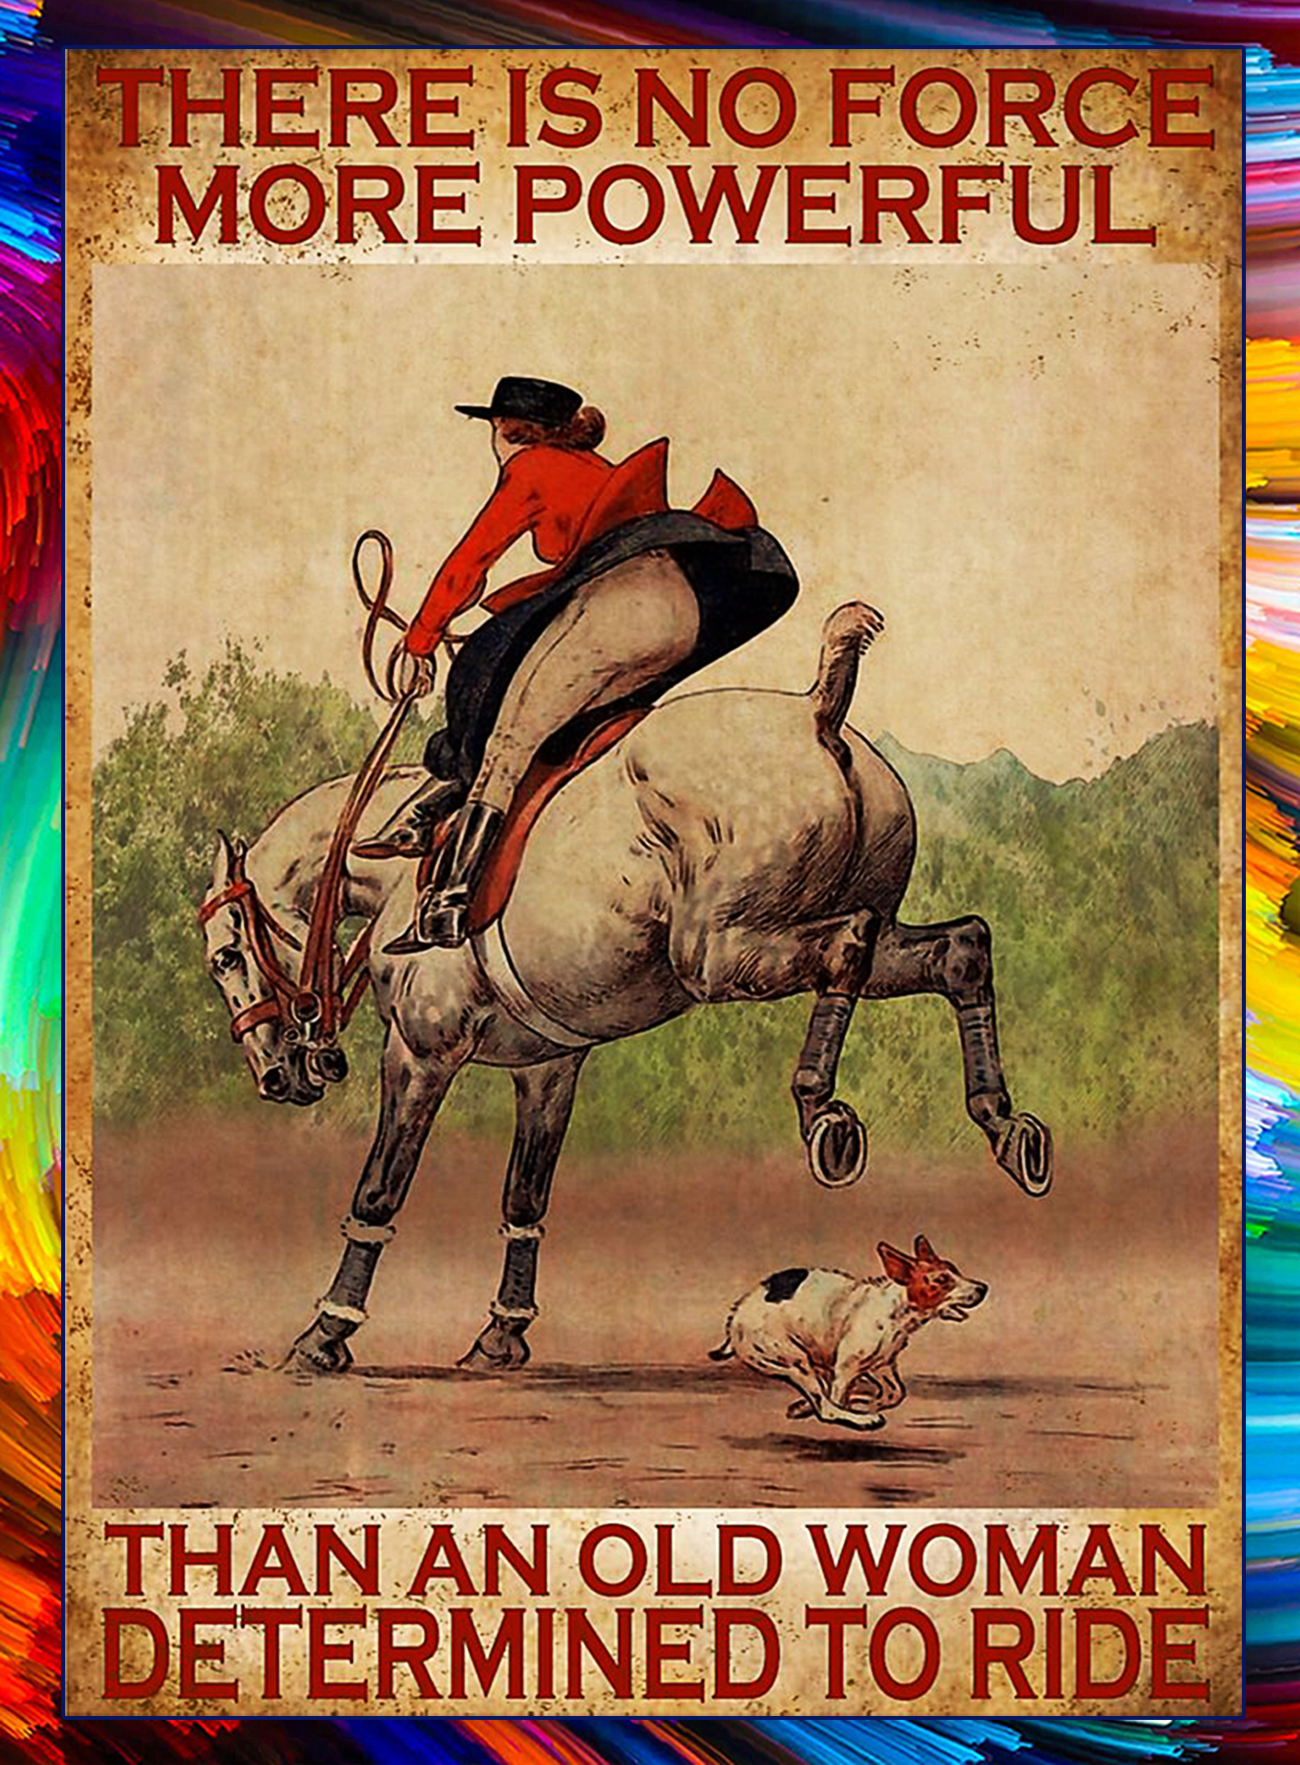 Horse There is no force more powerful than an old woman determined to ride poster - A1